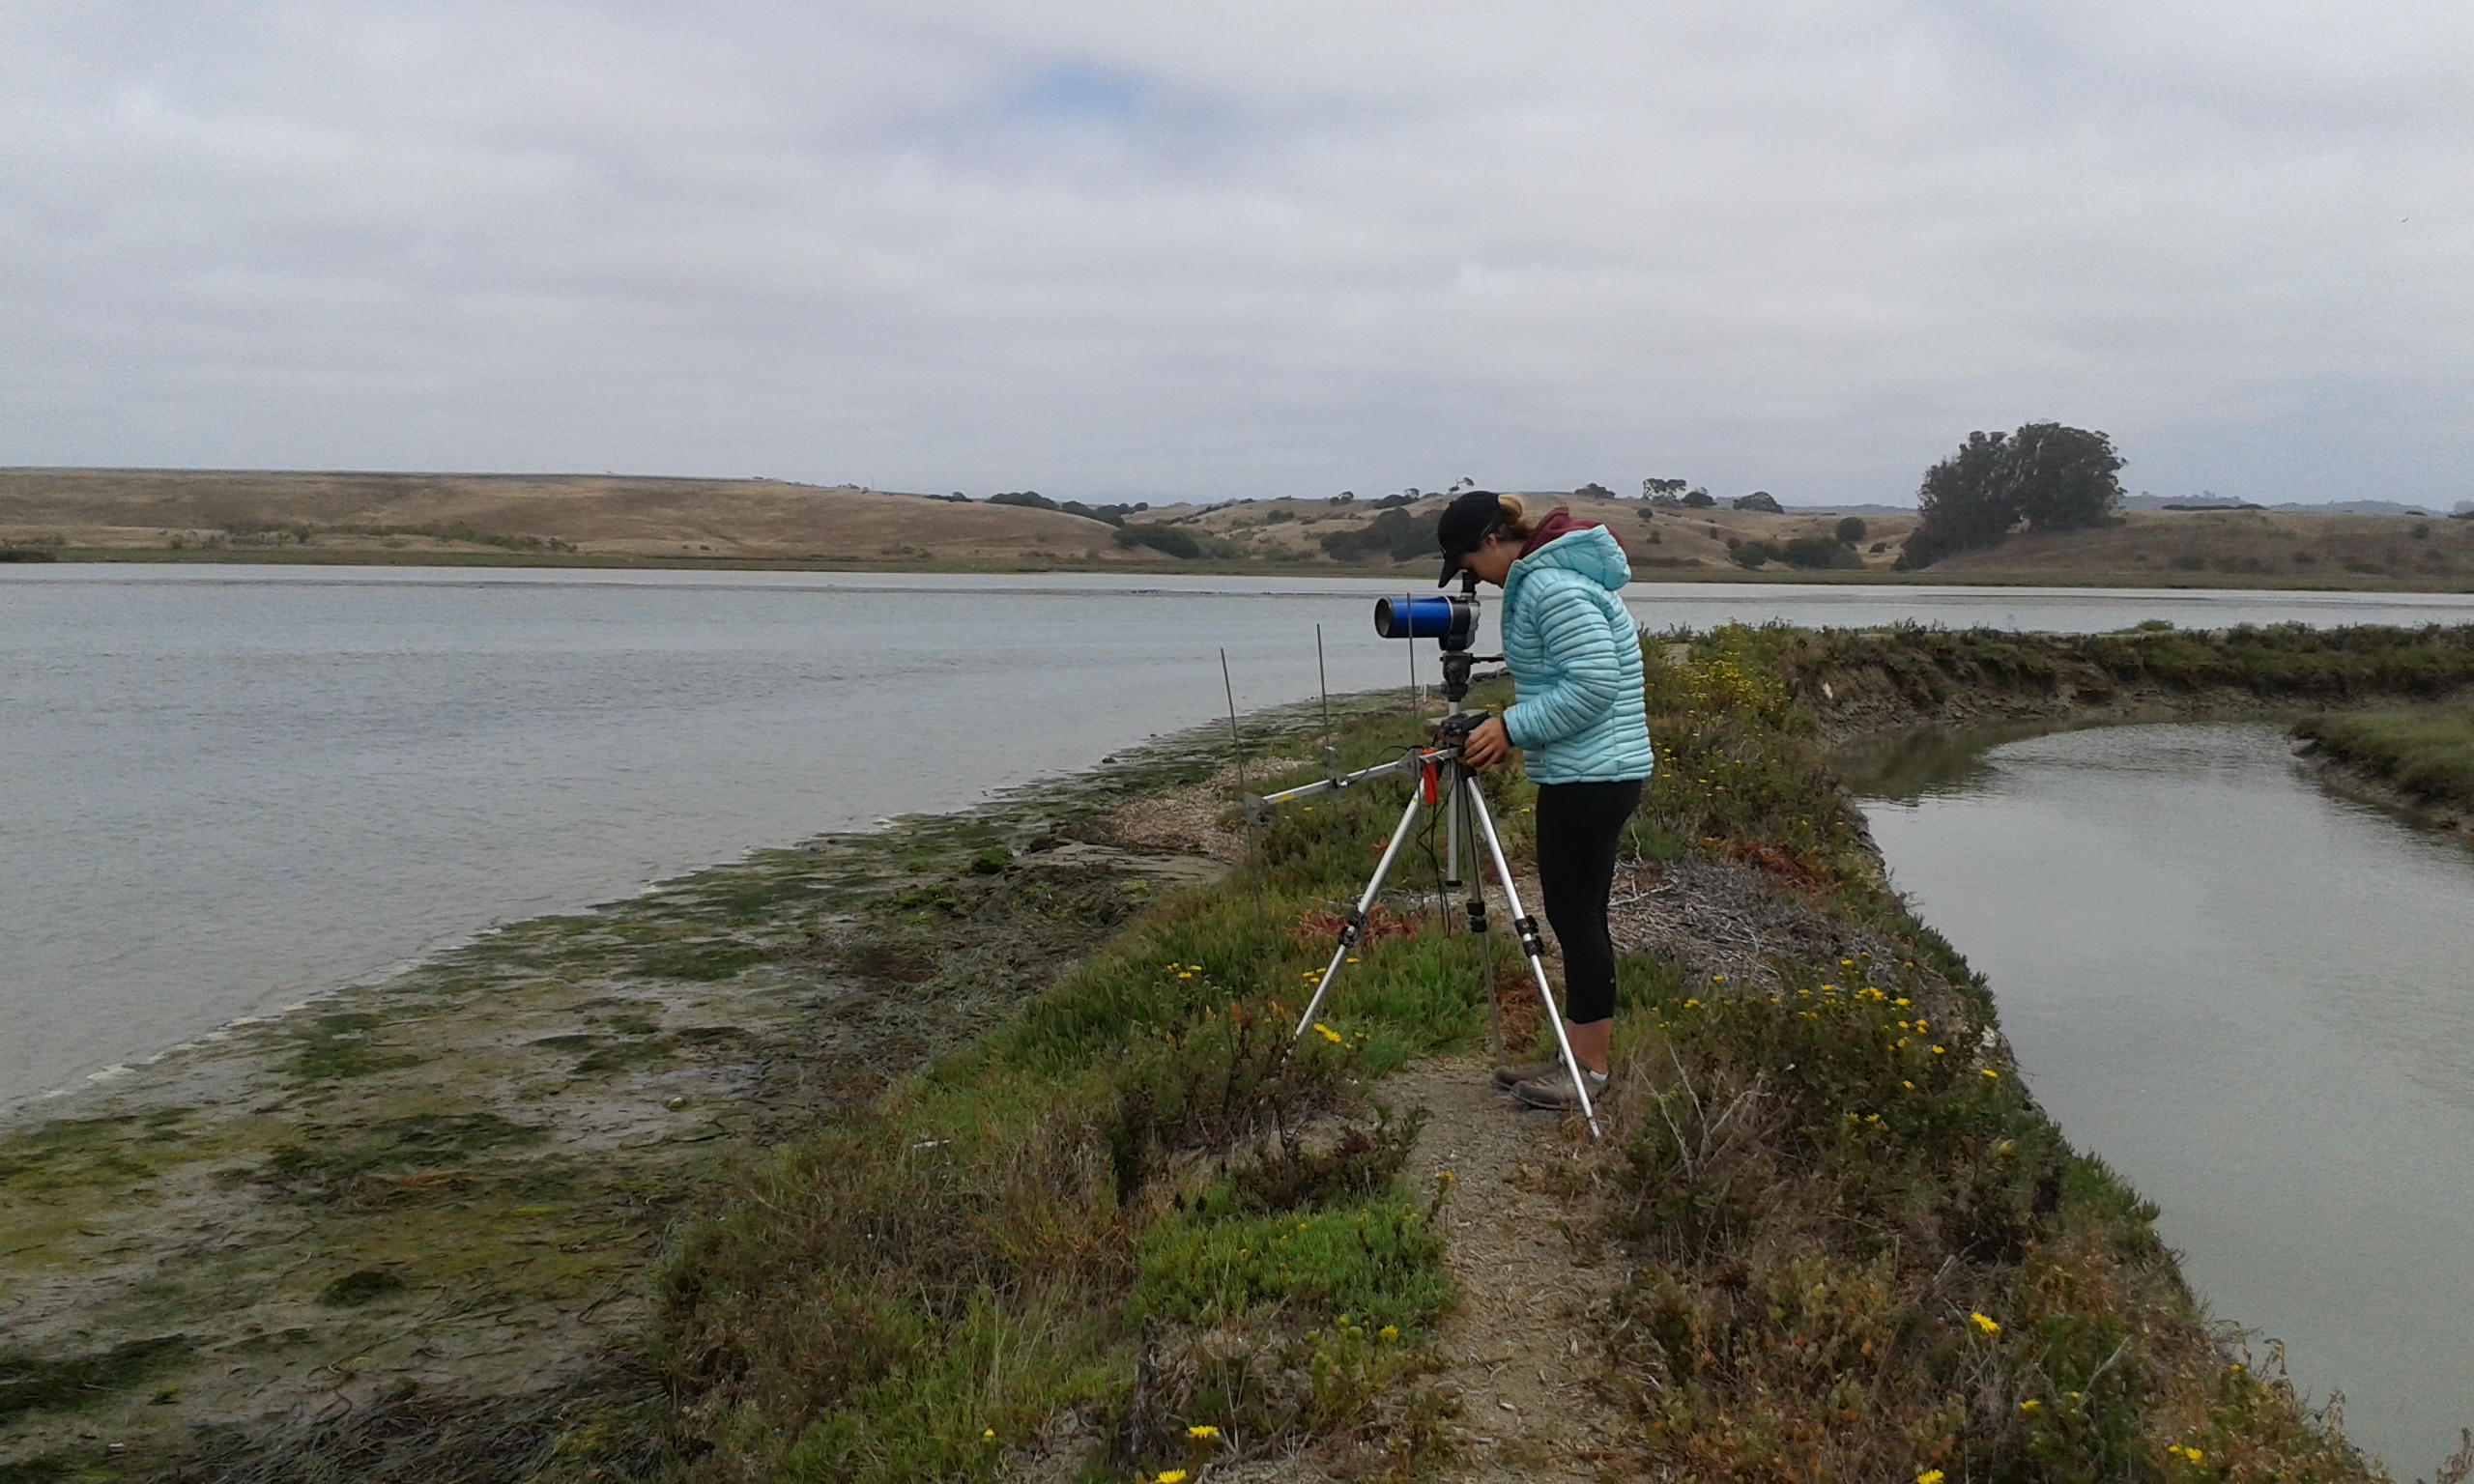 State Fellow Tracy Grimes tracking sea otters (Enhydra lutris) using radio telemetry in Elkhorn Slough, CA during her master's thesis